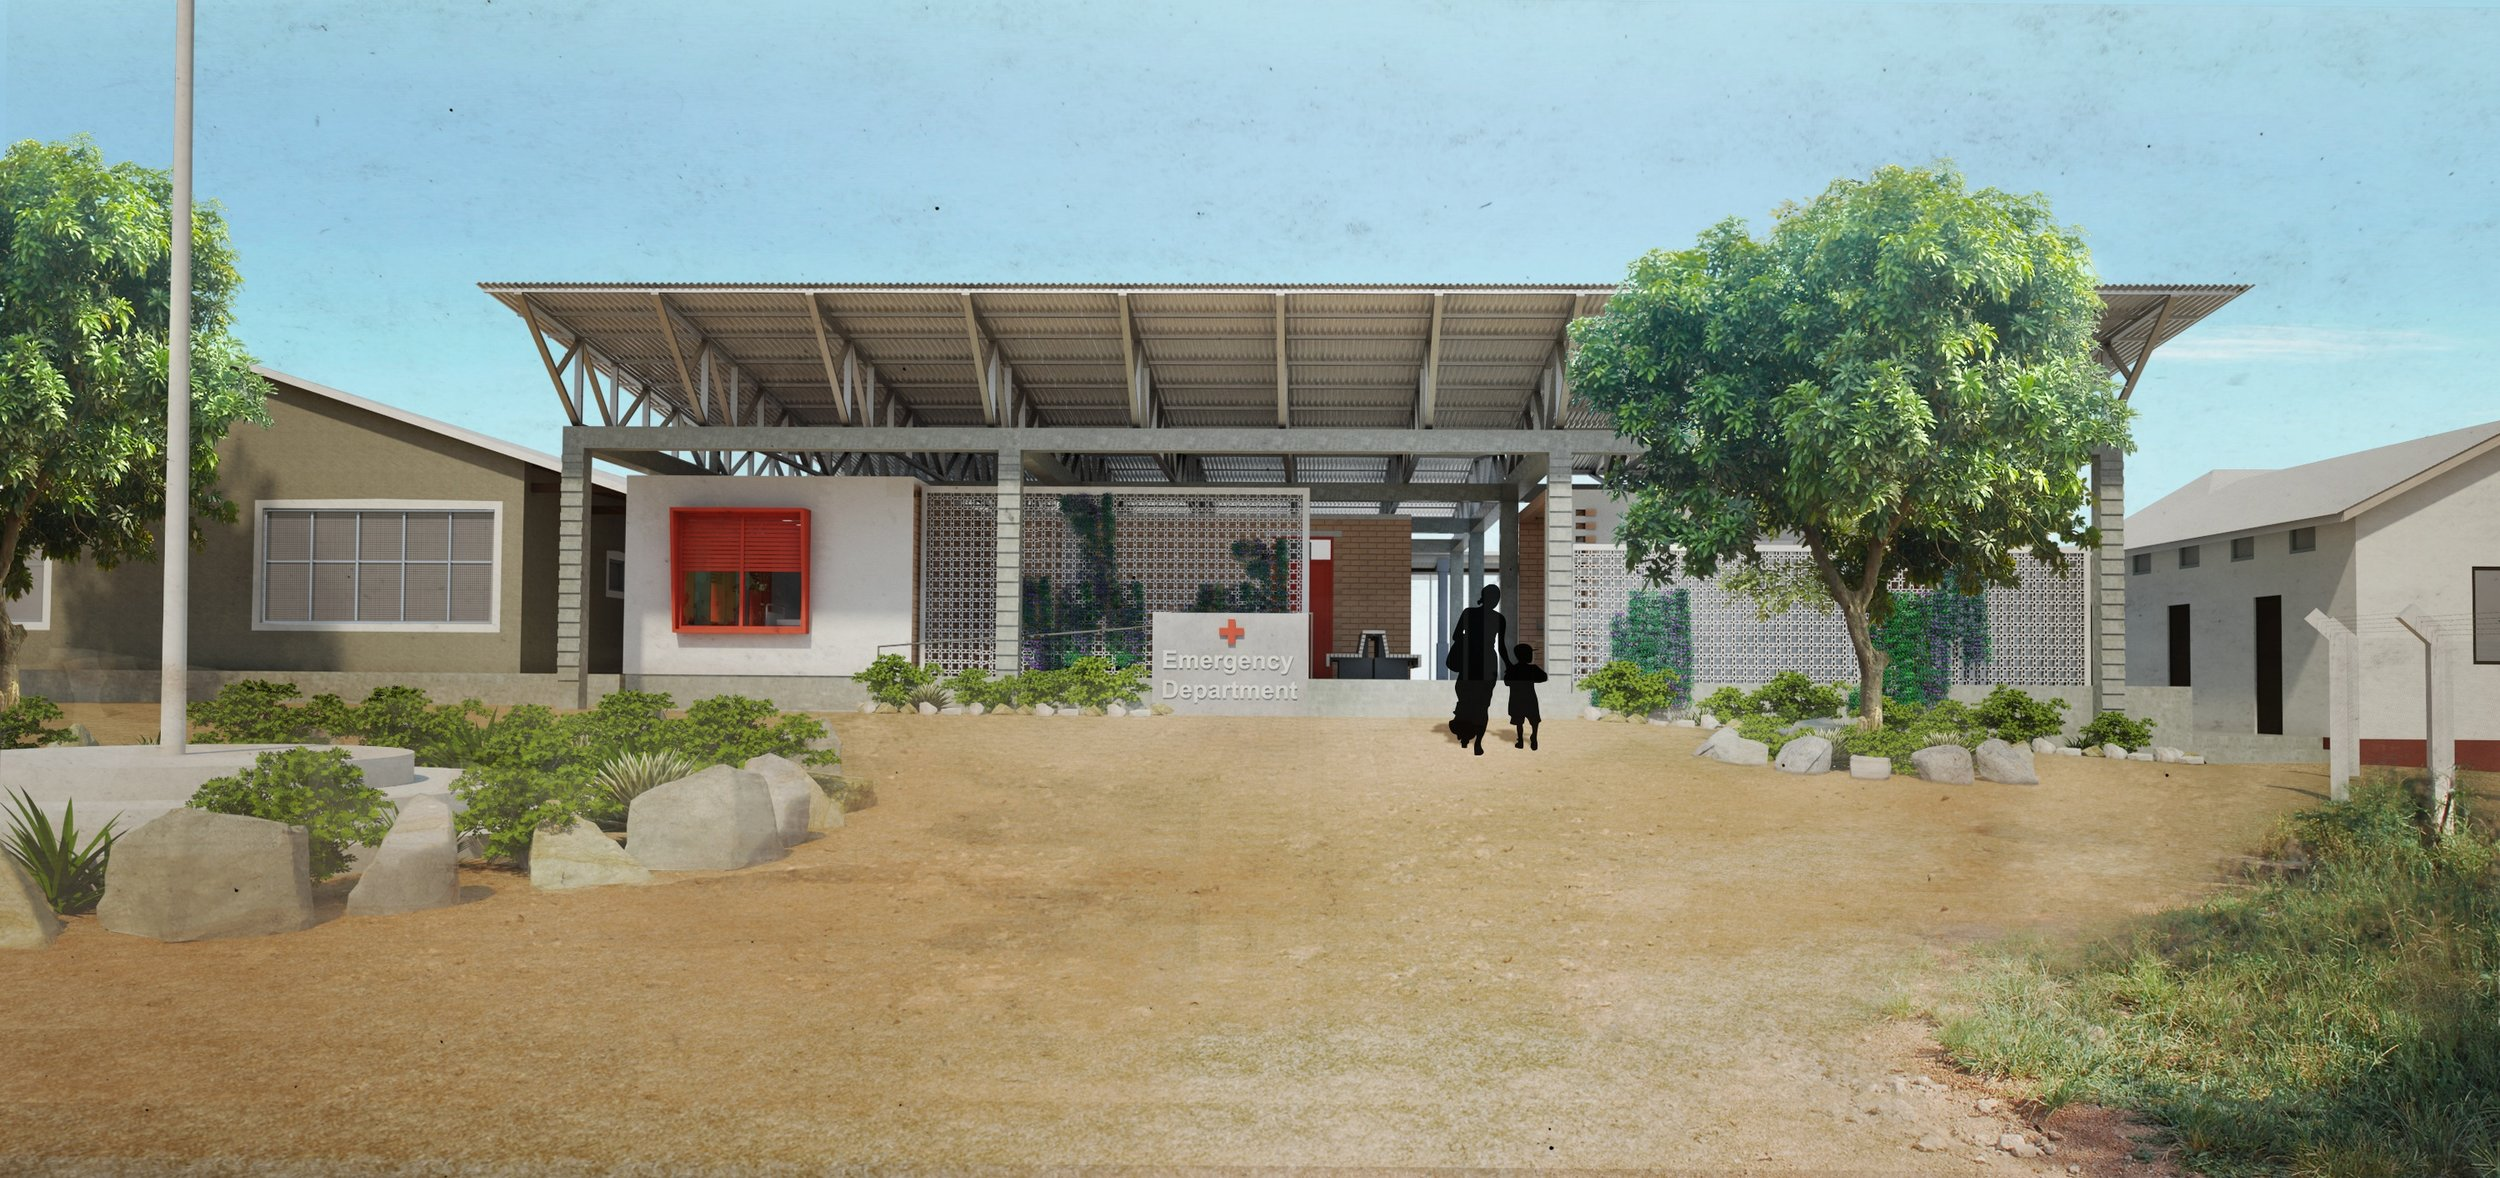 A render of the proposed emergency deparment